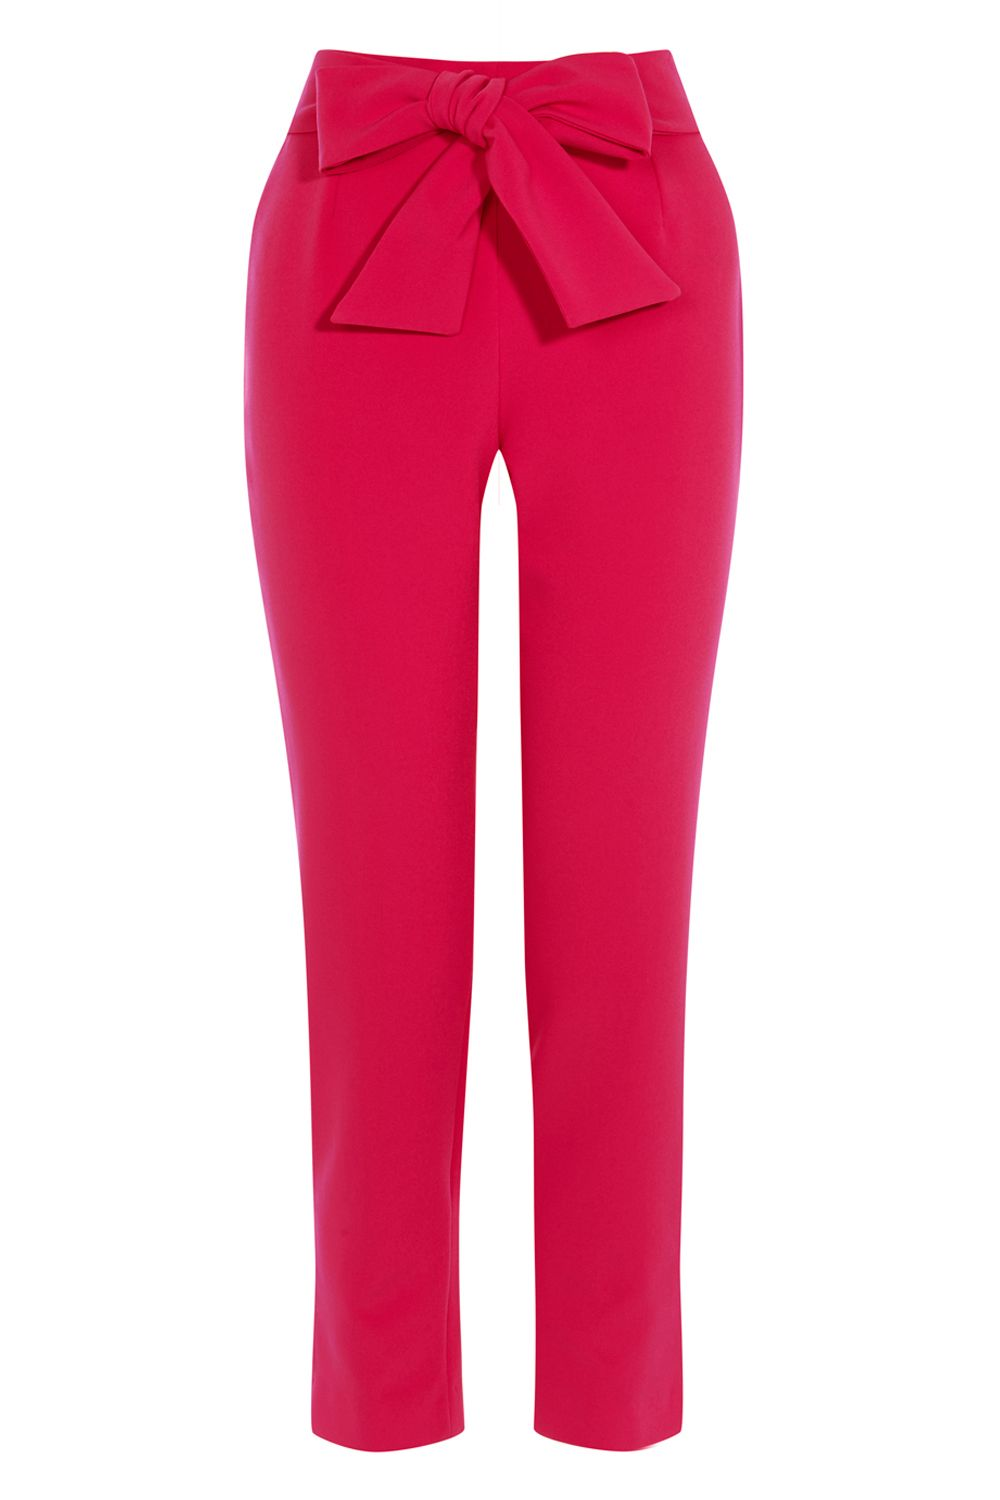 Coast Imaani Bow Trouser, Pink